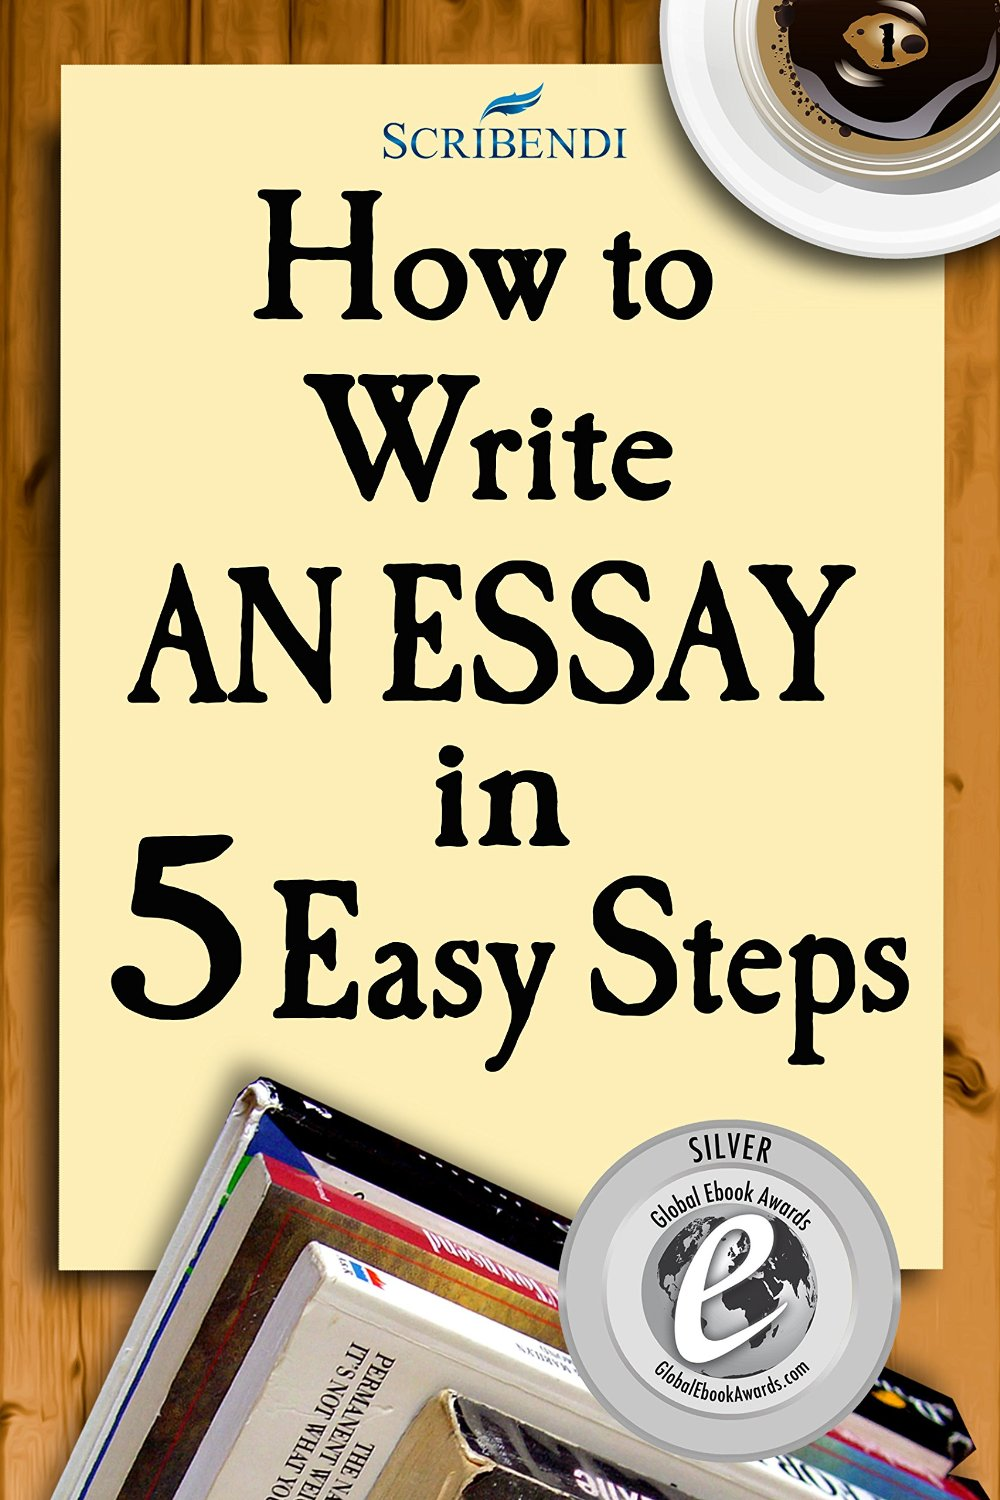 10 easy steps to writing an essay Read the essay question carefully highlight key words use the dictionary to check the meaning of any unfamiliar words identify the task words that indicate what.